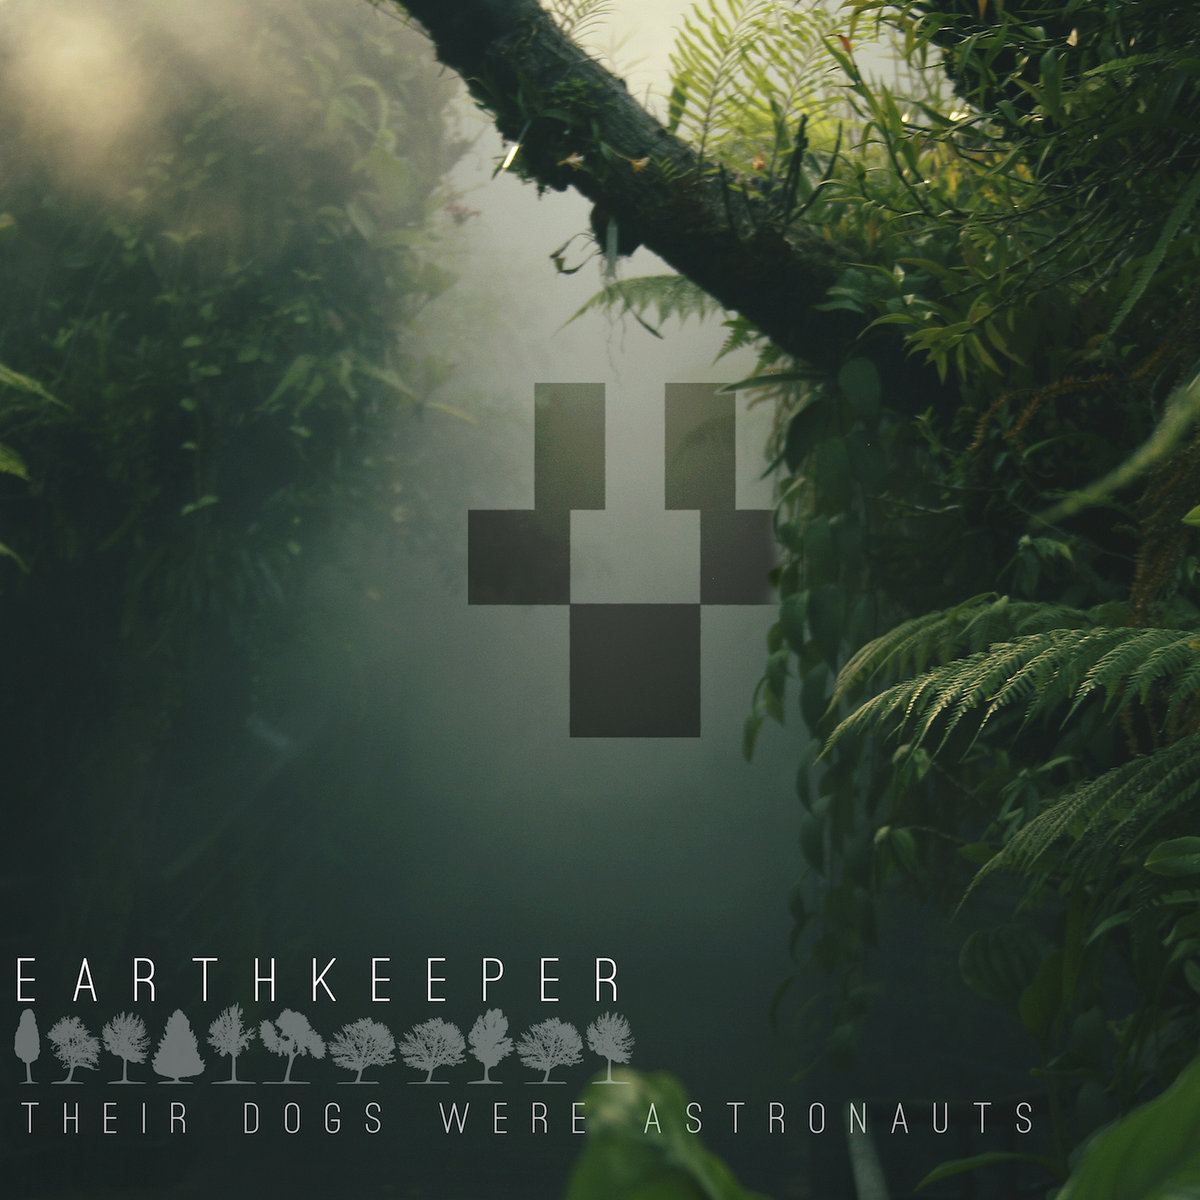 Their Dogs Were Astronauts - Yesterday's Tomorrow @ 'Earthkeeper' album (instrumental metal, metal)